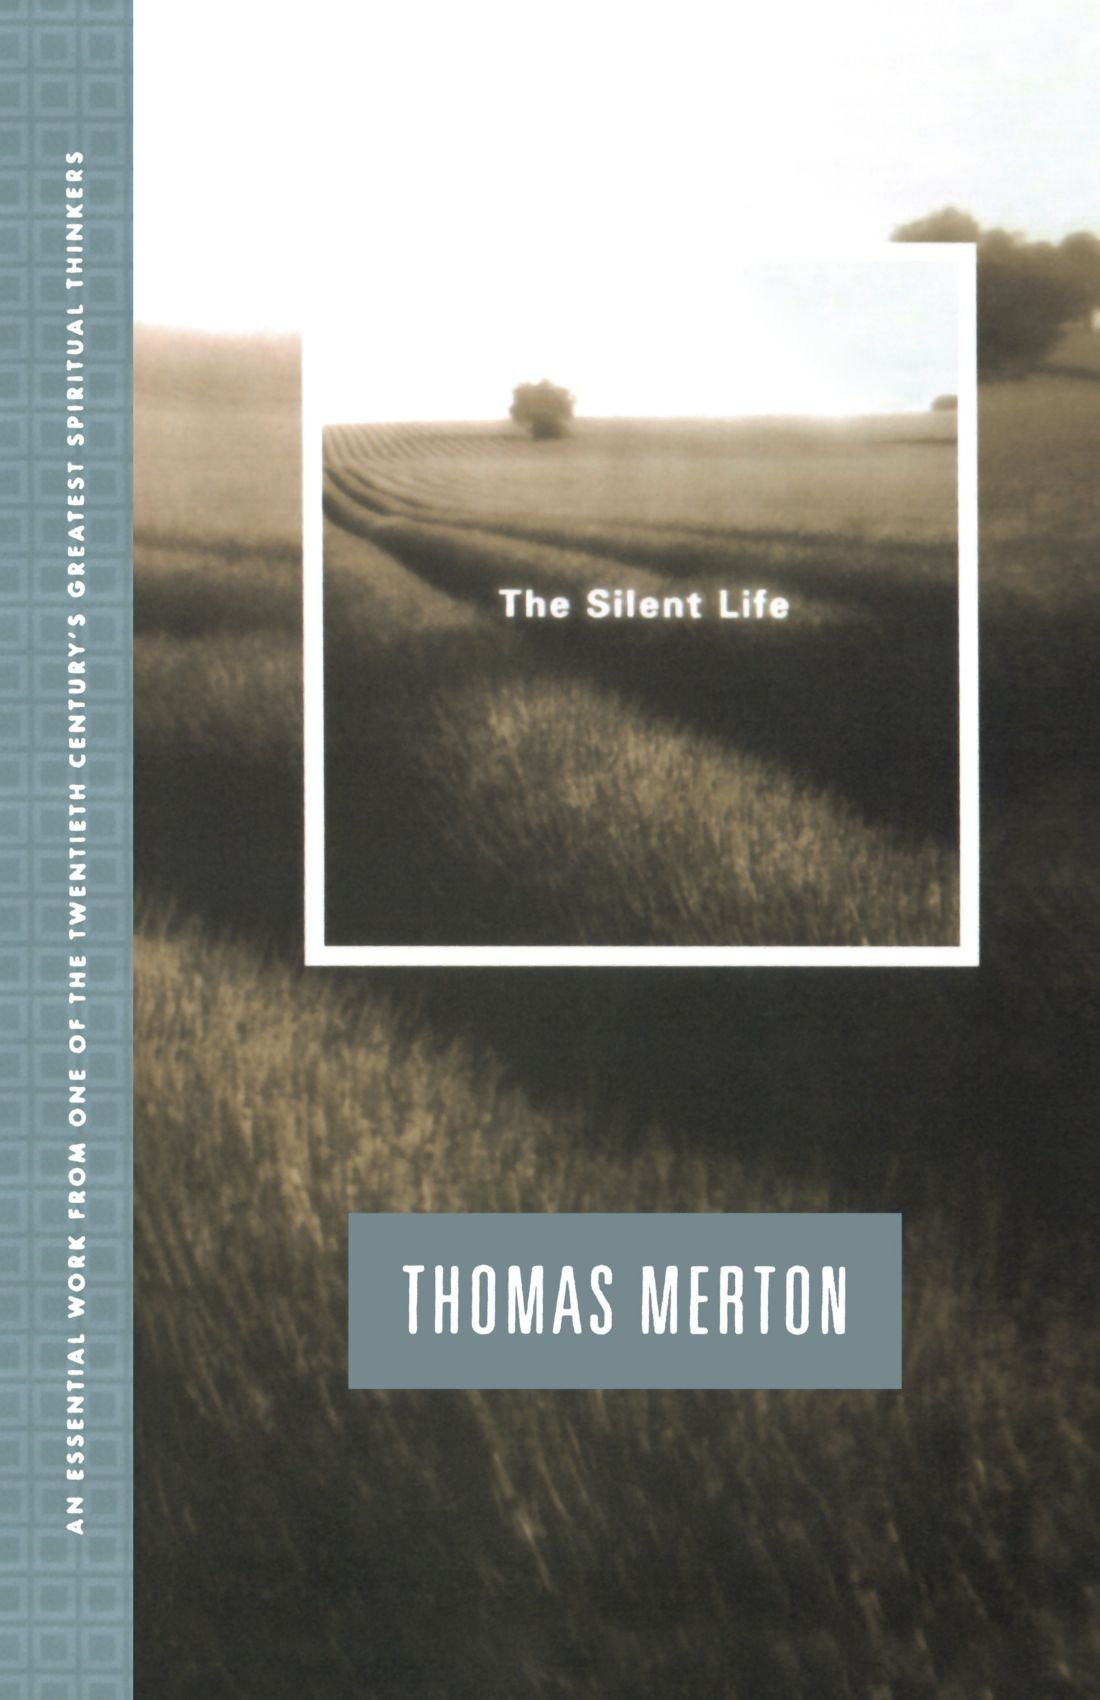 The silent life thomas merton 9780374512811 amazon books fandeluxe Image collections